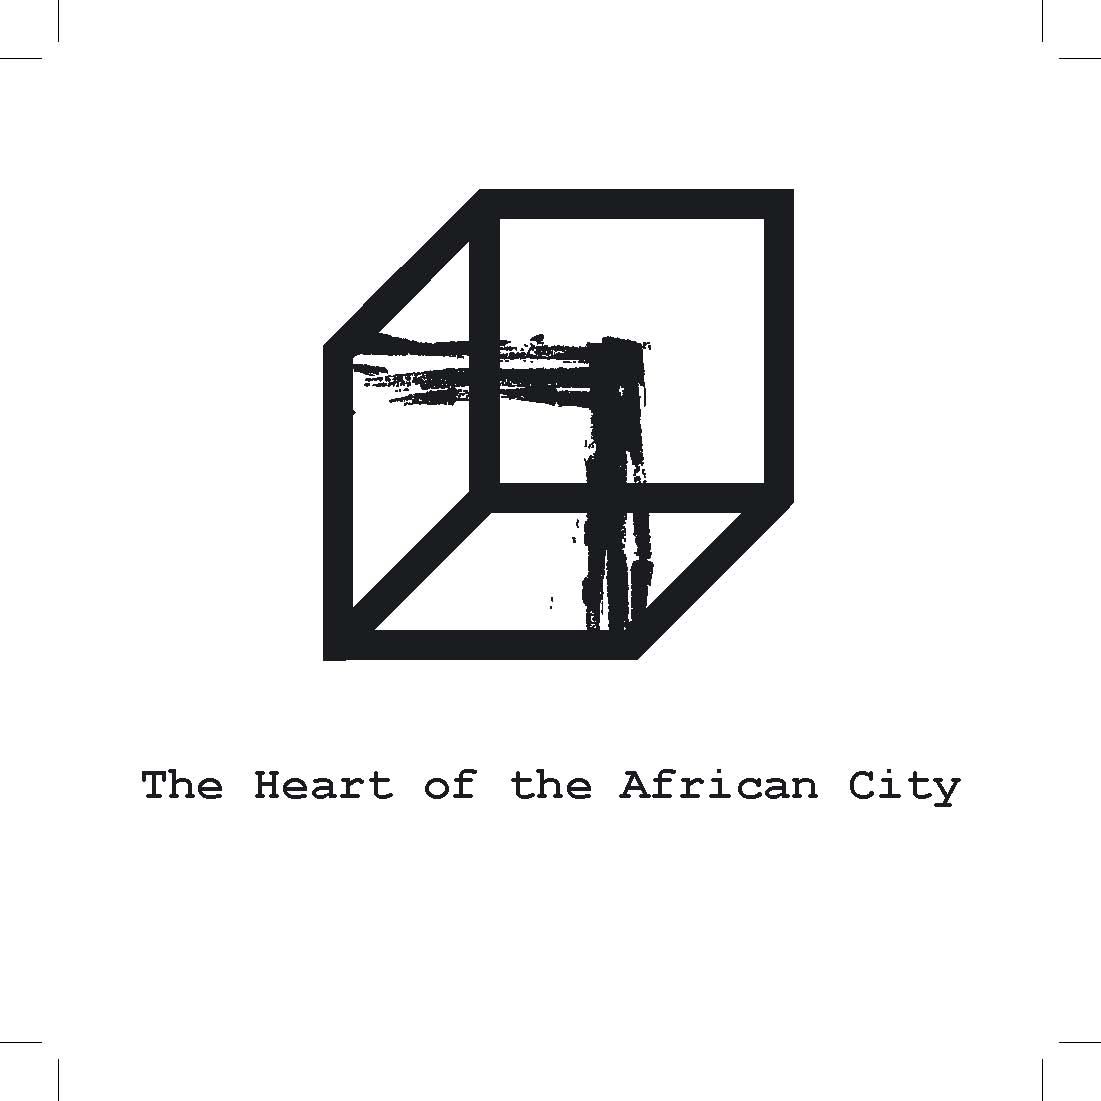 MAP Southafrica - Heart of the African City